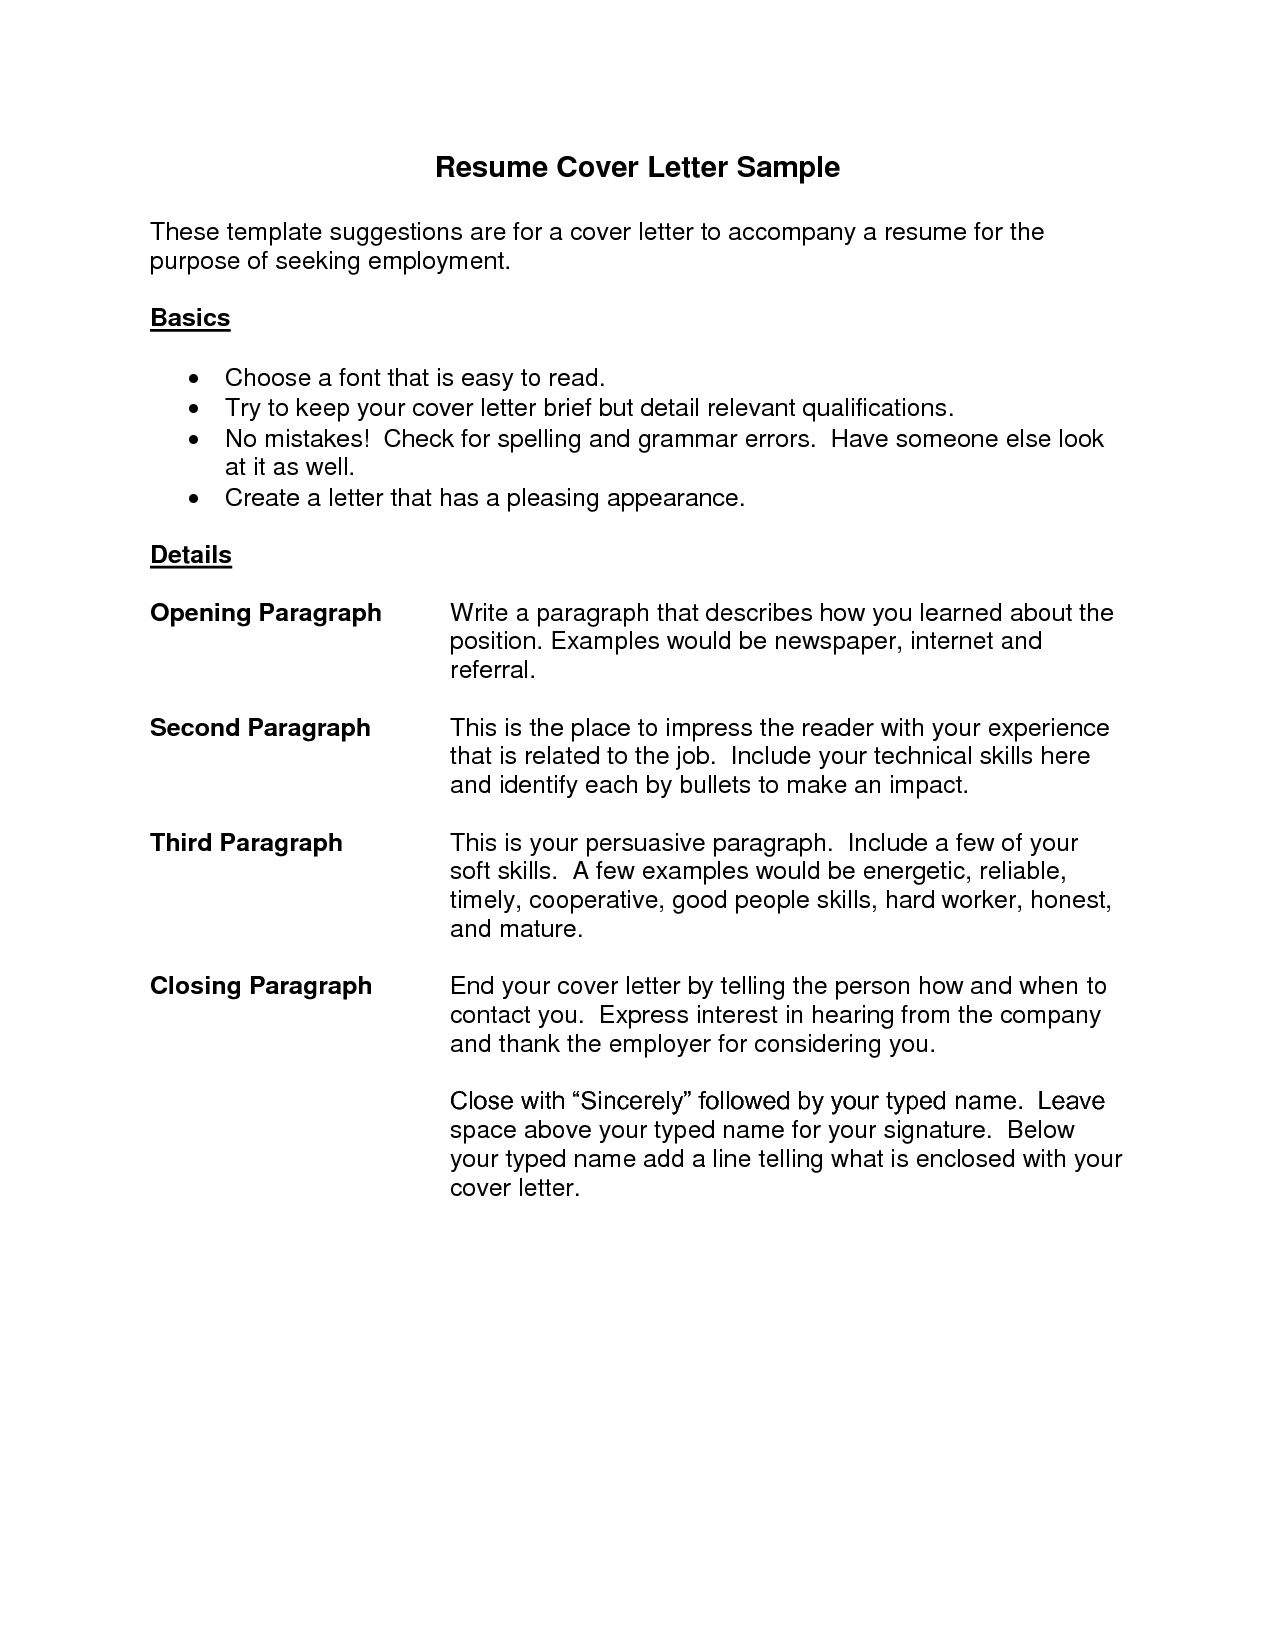 cover letter resume best templatesimple cover letter application - Resume Letter Cover